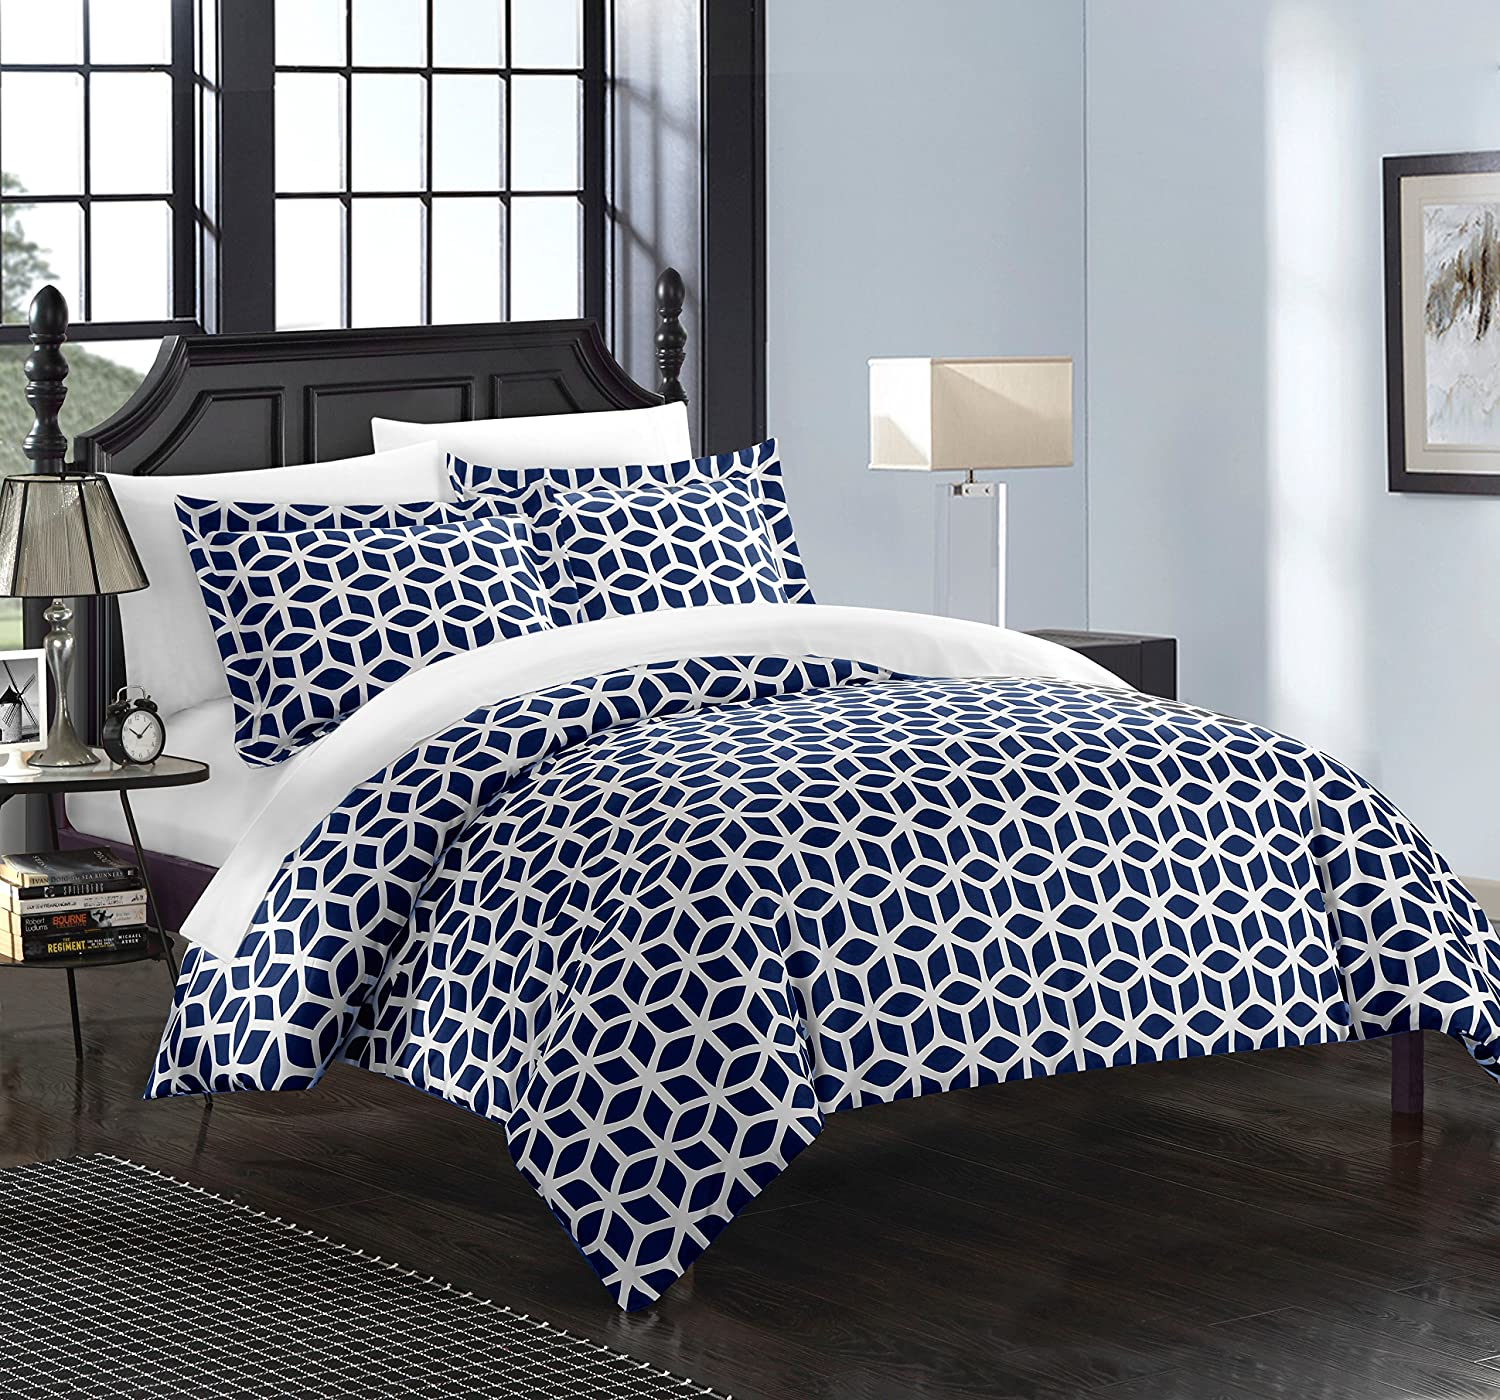 Chic Home Elizabeth 6 Piece Reversible Duvet Cover Set Geometric Diamond Print Design Bed in a Bag Bedding Zipper Closure - Sheets Decorative Pillow Sham Included Twin Navy DS0439-0580-AN